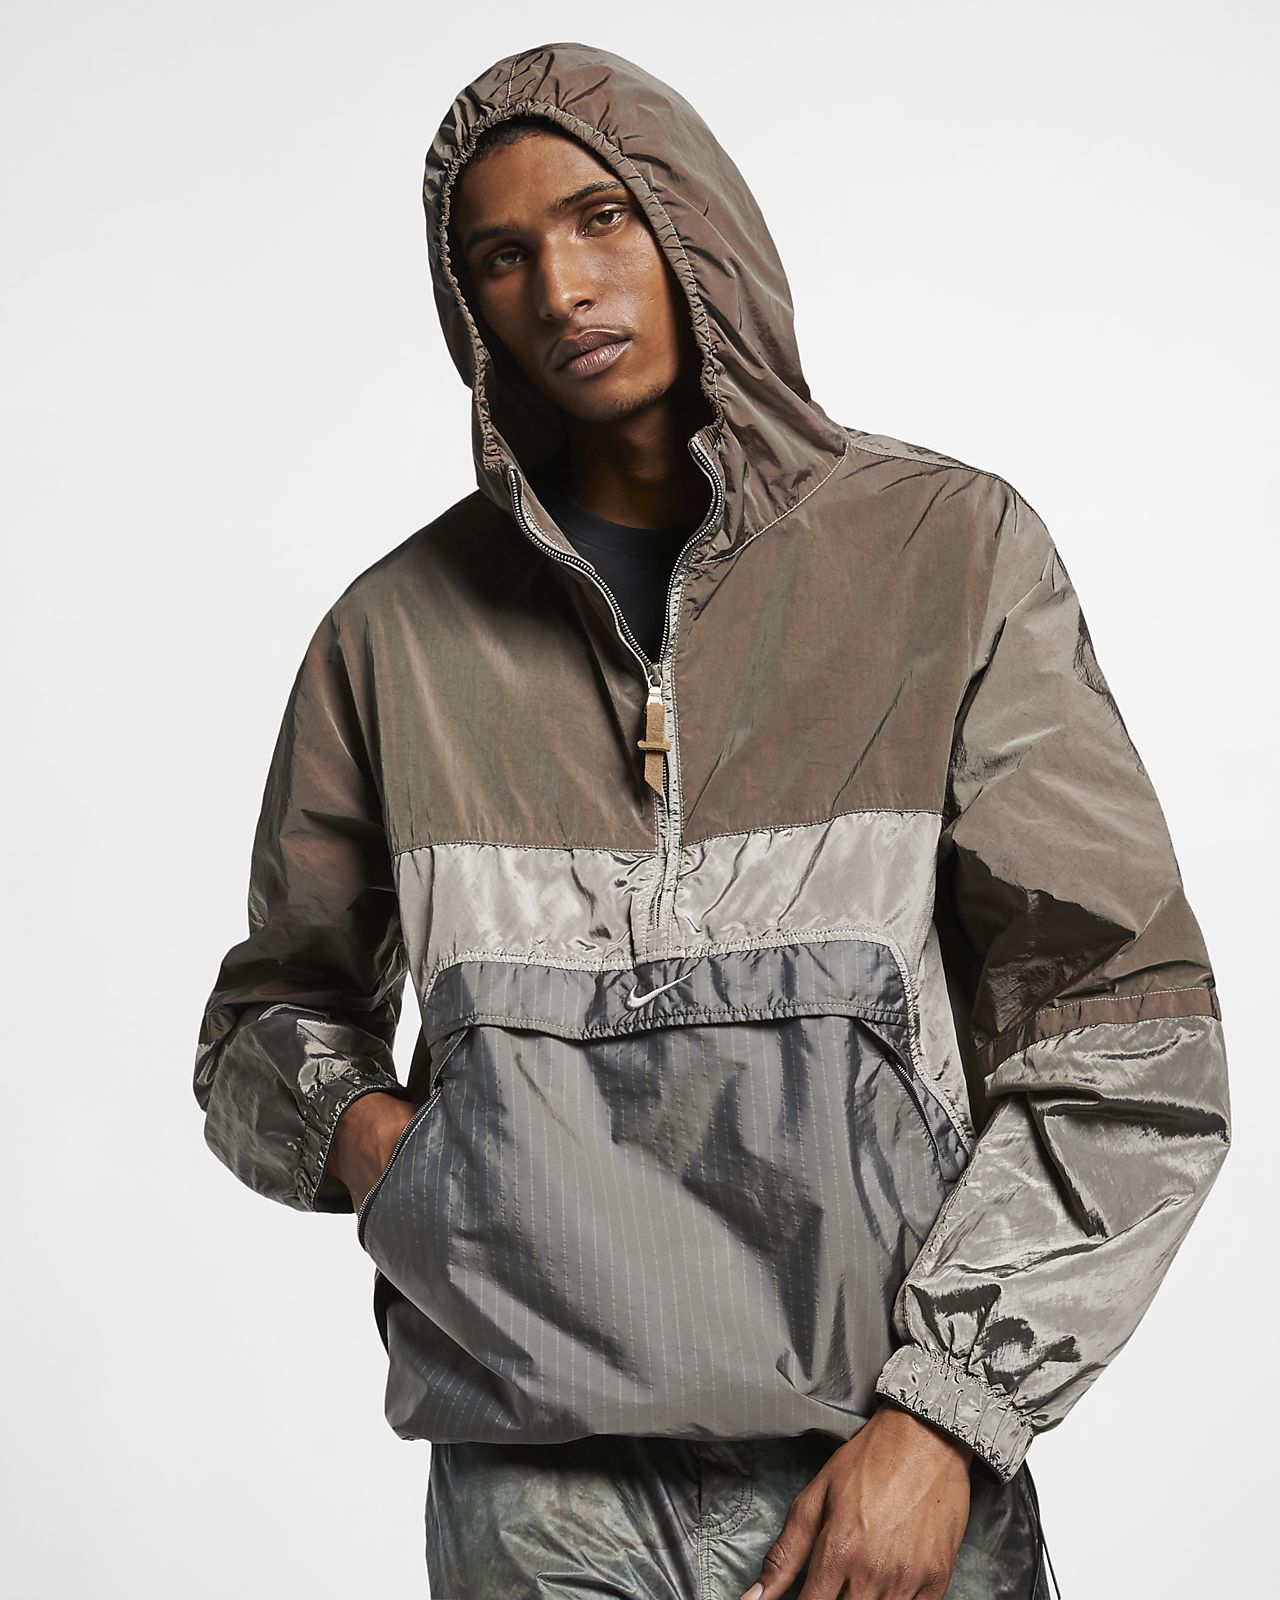 Casaco anoraque NikeLab Made in Italy Collection para homem